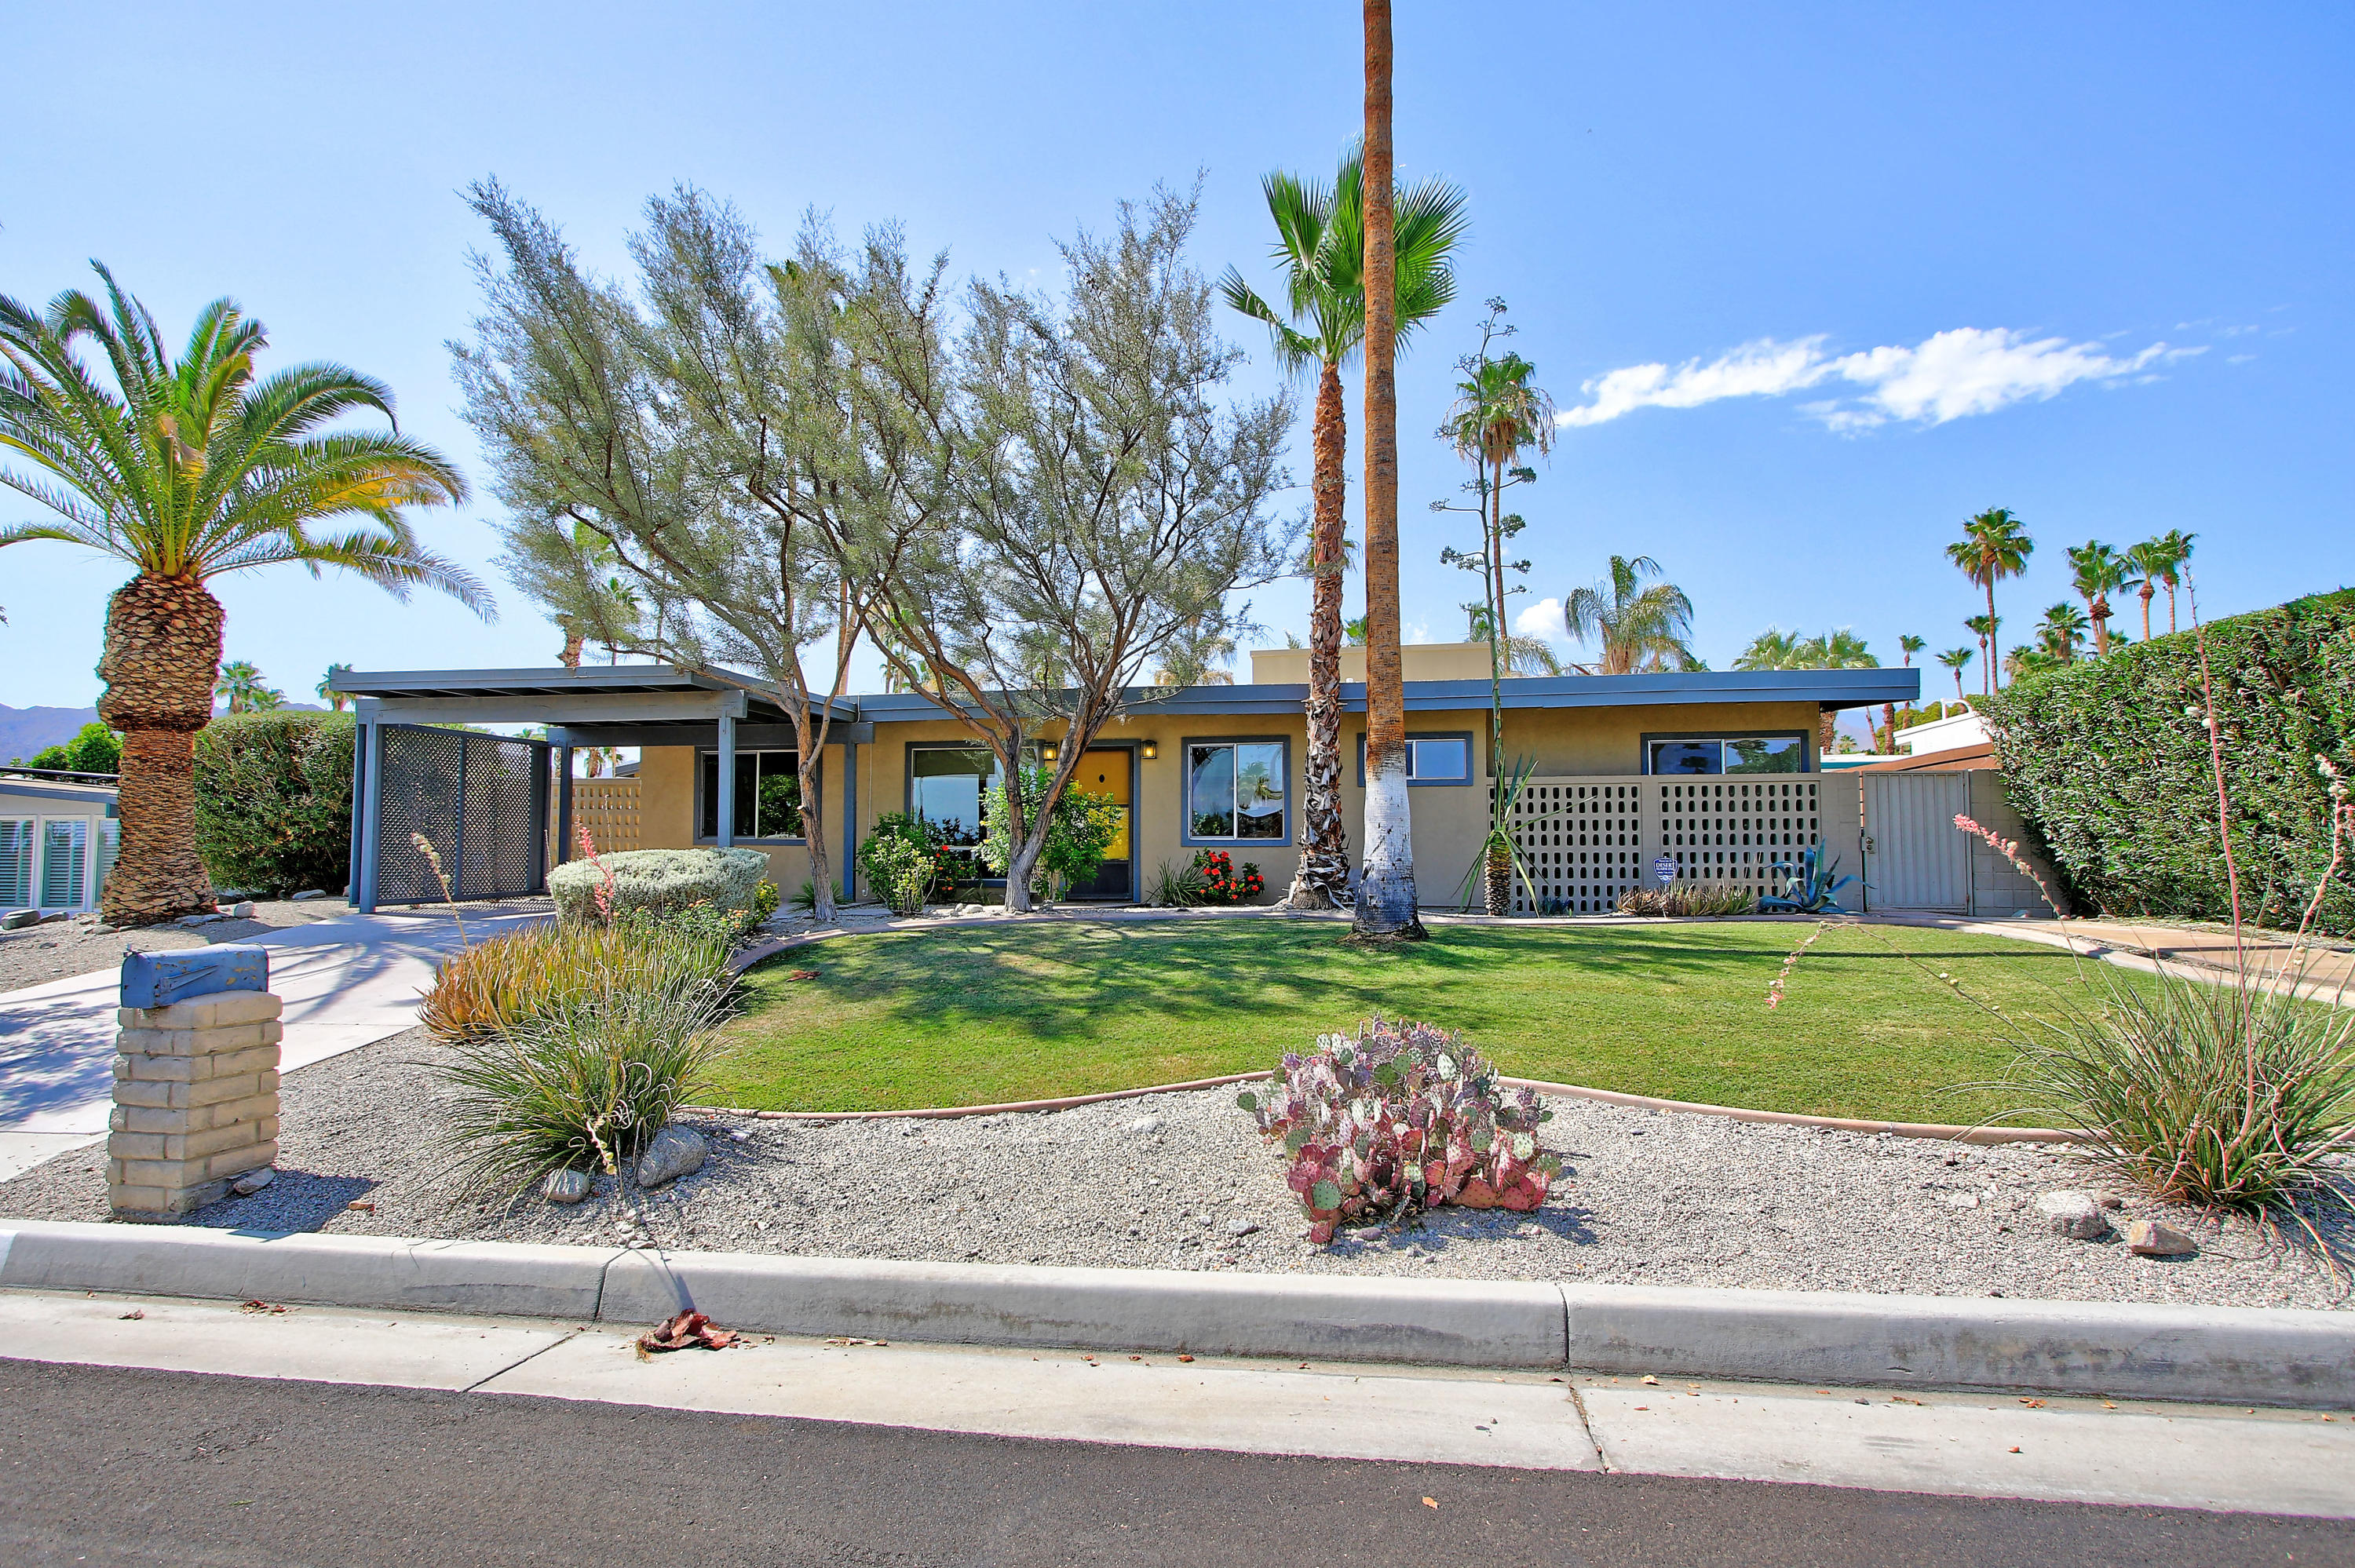 Wait until you see this incredible MID CENTURY POOL HOME IN SOUTH PALM DESERT!! It doesn't get better than this! This great home has been upgraded to the MAX! and offers a spacious GREAT ROOM, 2 bedrooms, DEN, 2 baths and a VERY PRIVATE back yard with Sparkling Lap Pool with Sheer Descent Waterfall! Talk about WOW!!  Check out the Open Gourmet Kitchen with Slab Granite Counters and Full Backsplash!  Stainless Steel Appliances including a WOLFF OVEN, Vaulted Beam Ceilings, Free standing Fireplace are some of the custom features of this fabulous home! 2 NEW A/C Units with 10 year Warranties  and 2 New Thermostats WIFI enabled! The Primary bedroom is spacious and has an ensuite bath with dual basins and Custom Stone Frameless Shower! The hall bath has a Jetted Tub and designer sink! 2 new toilets in both bathrooms! Ceiling Fans throughout! Great storage on side of the home. Owner has thought of everything!!! Beautiful tranquil neighborhood  close to El Paseo, world class dining and shopping, hiking trails and The Living Desert! HOA's only $$180 per year!! This is an A+++ PRIME PROPERTY AND SHOULD BE AT THE TOP OF YOUR MUST SEE LIST TODAY!!!